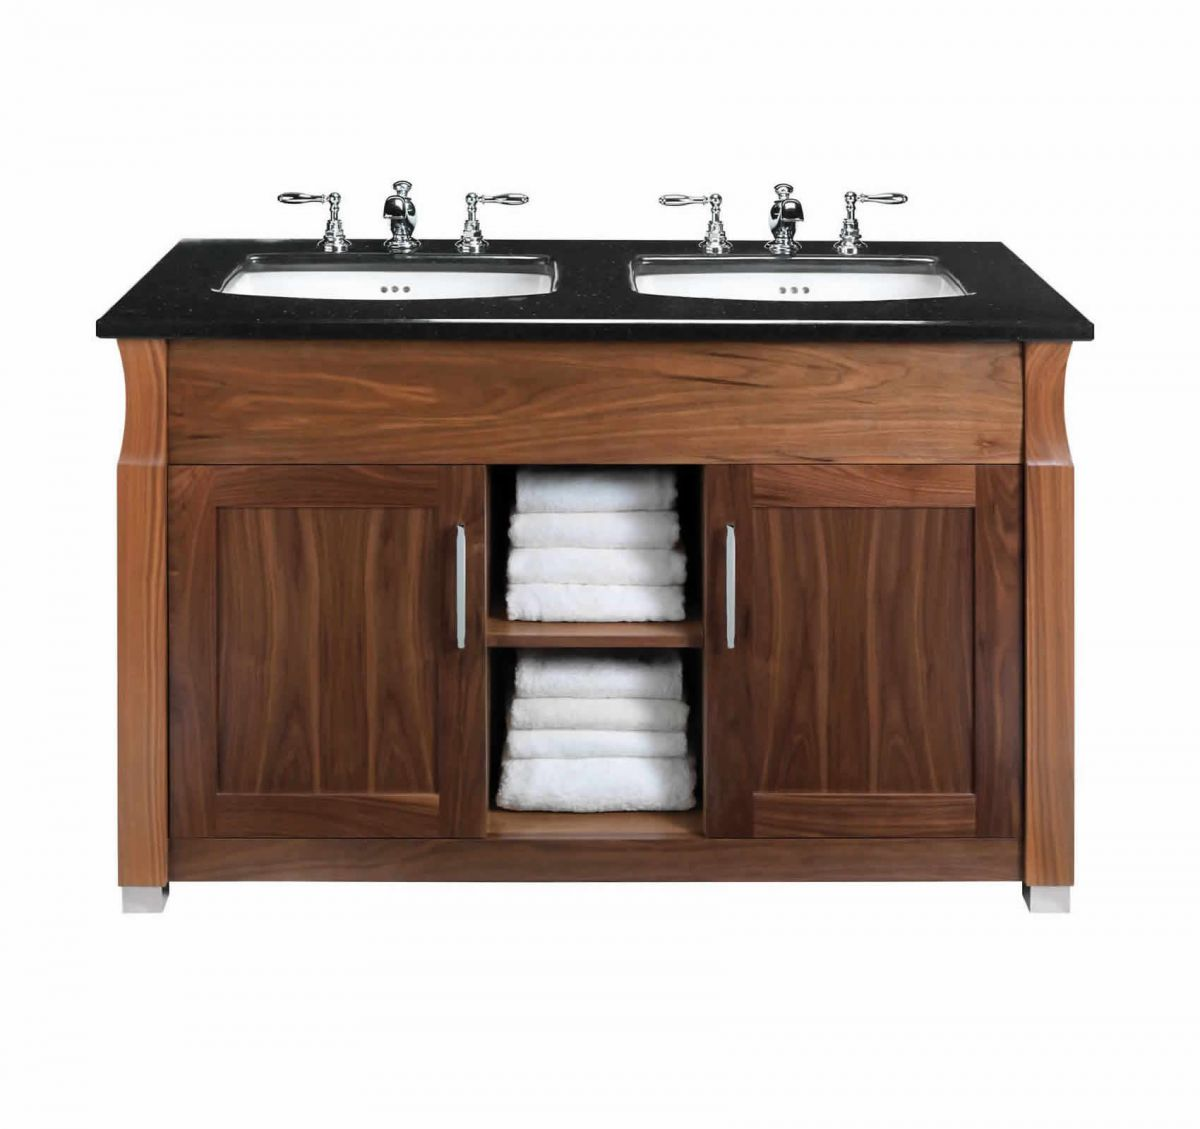 Double Bathroom Sink Units Uk imperial astoria deco barrington double vanity  unit : uk bathrooms